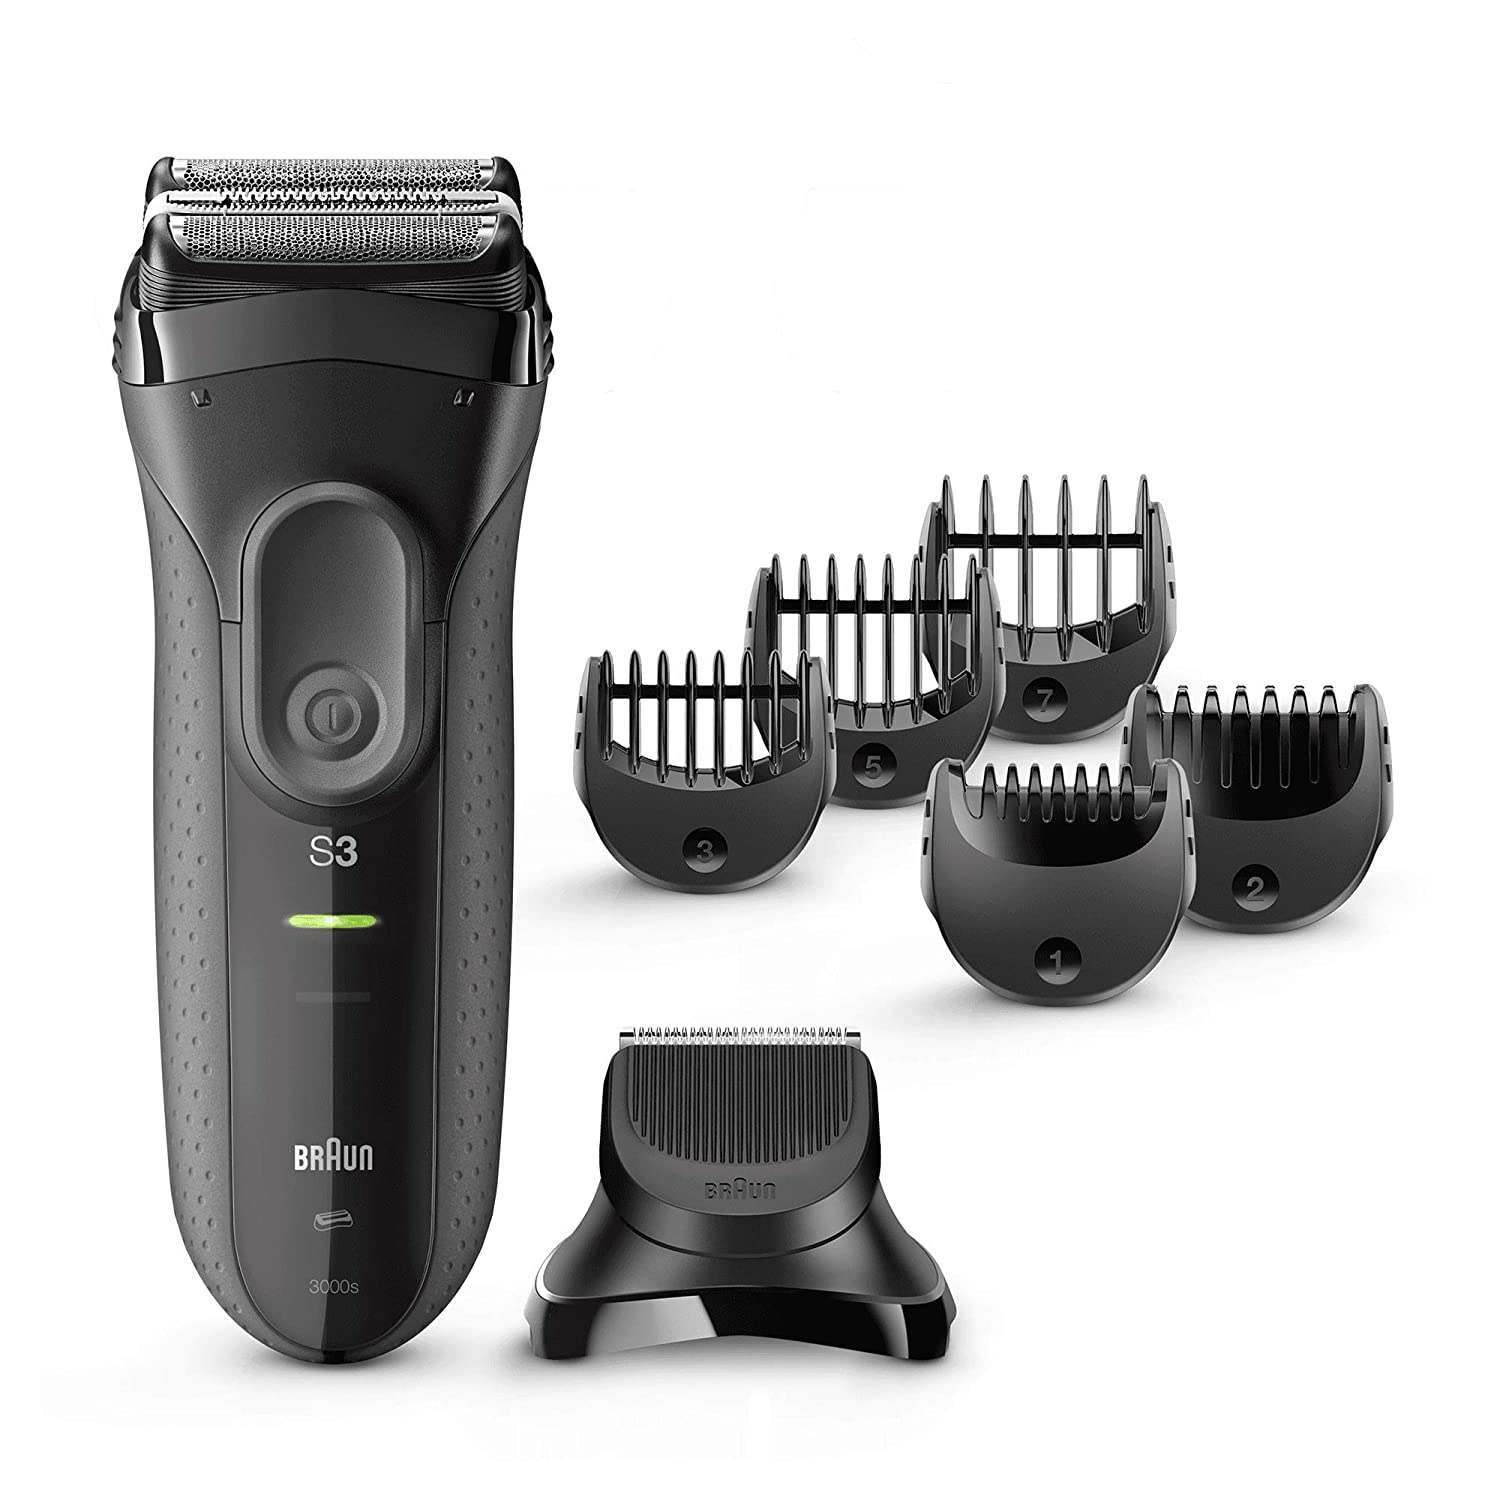 Braun Series 3 Shave & Style 3000BT 3-in-1 Electric Shaver/Razor for Men with Precision Beard Trimmer